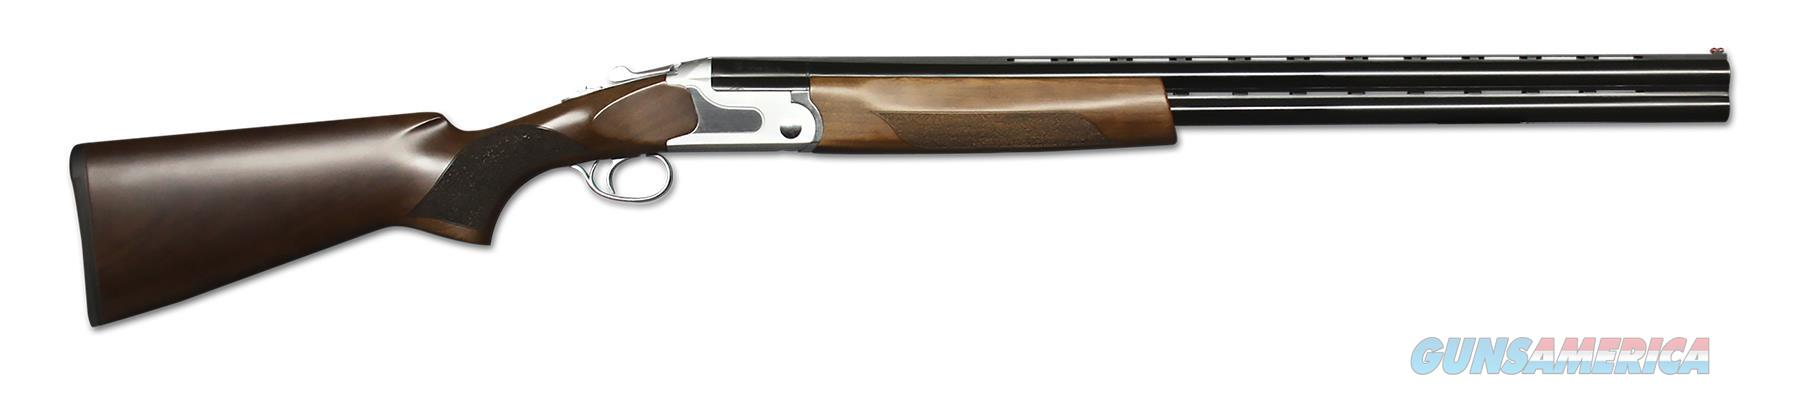 "CZ 06089 UPLAND OVER/UNDER 12 GA 28"" 3"" TURKISH WALNUT BLACK MATTE FINISH 06089  Guns > Shotguns > CZ Shotguns"